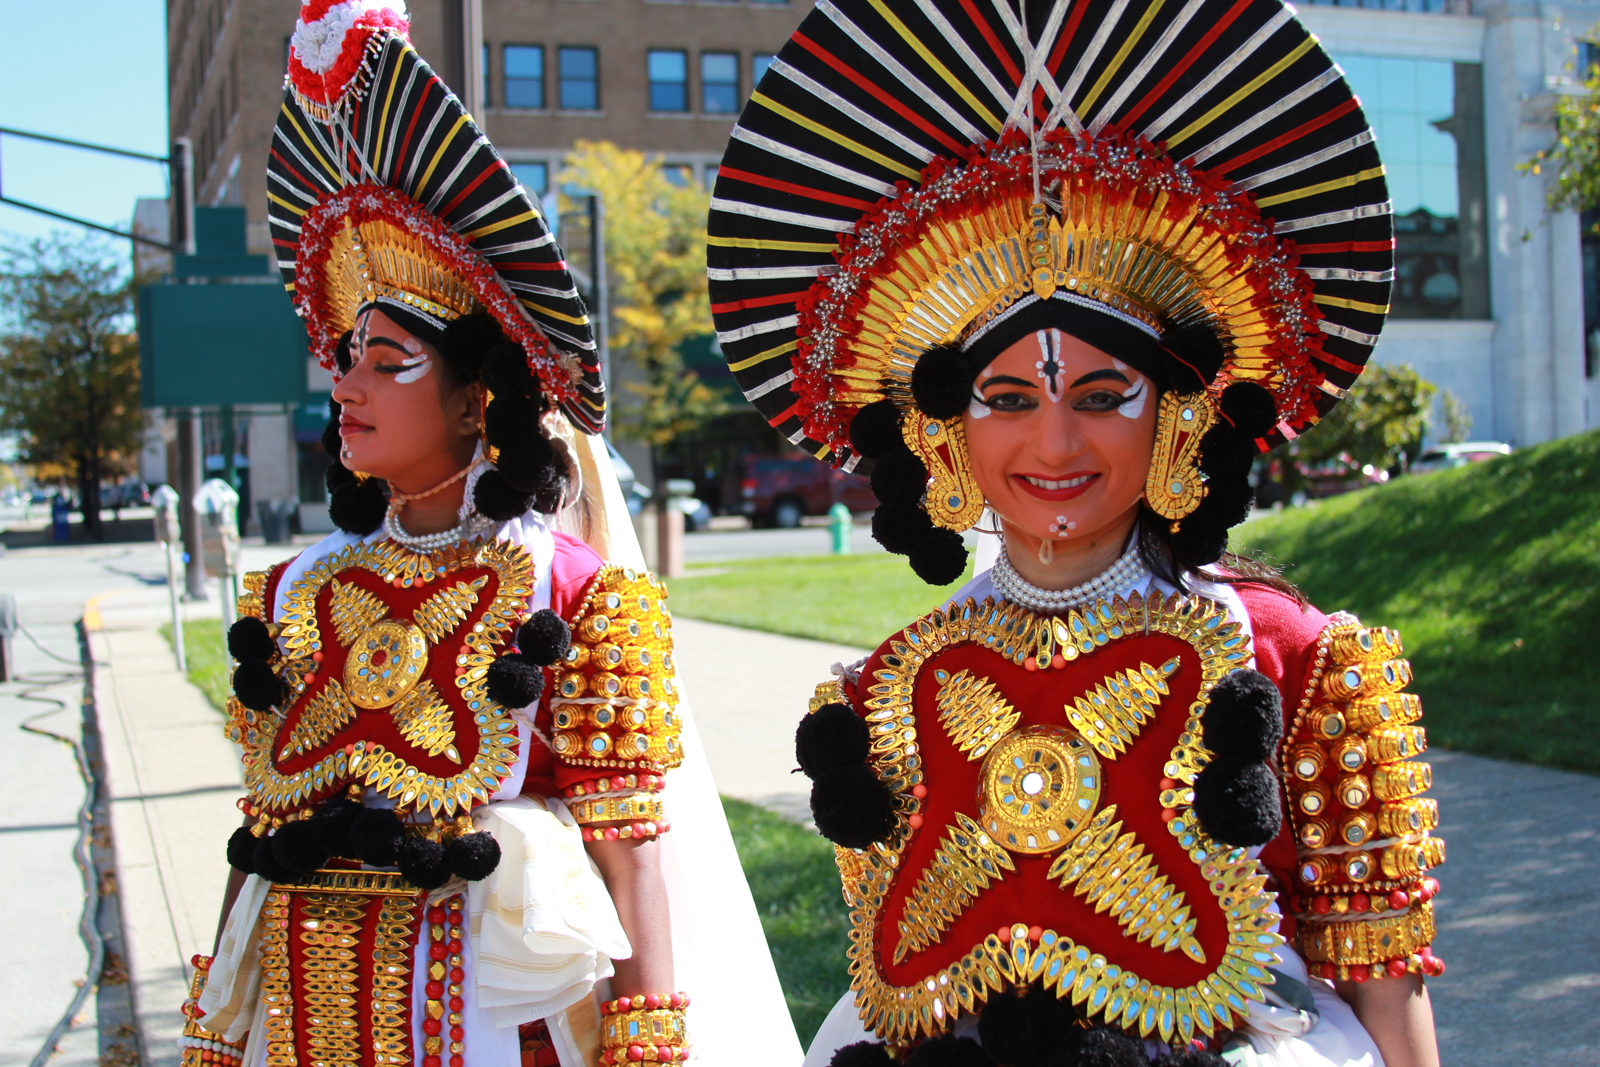 Festival of Faiths, Indianapolis  Sunday, September 7th, 1-5pm, Veteran's Memorial Plaza, Indianapolis, Indiana.  Get Involved